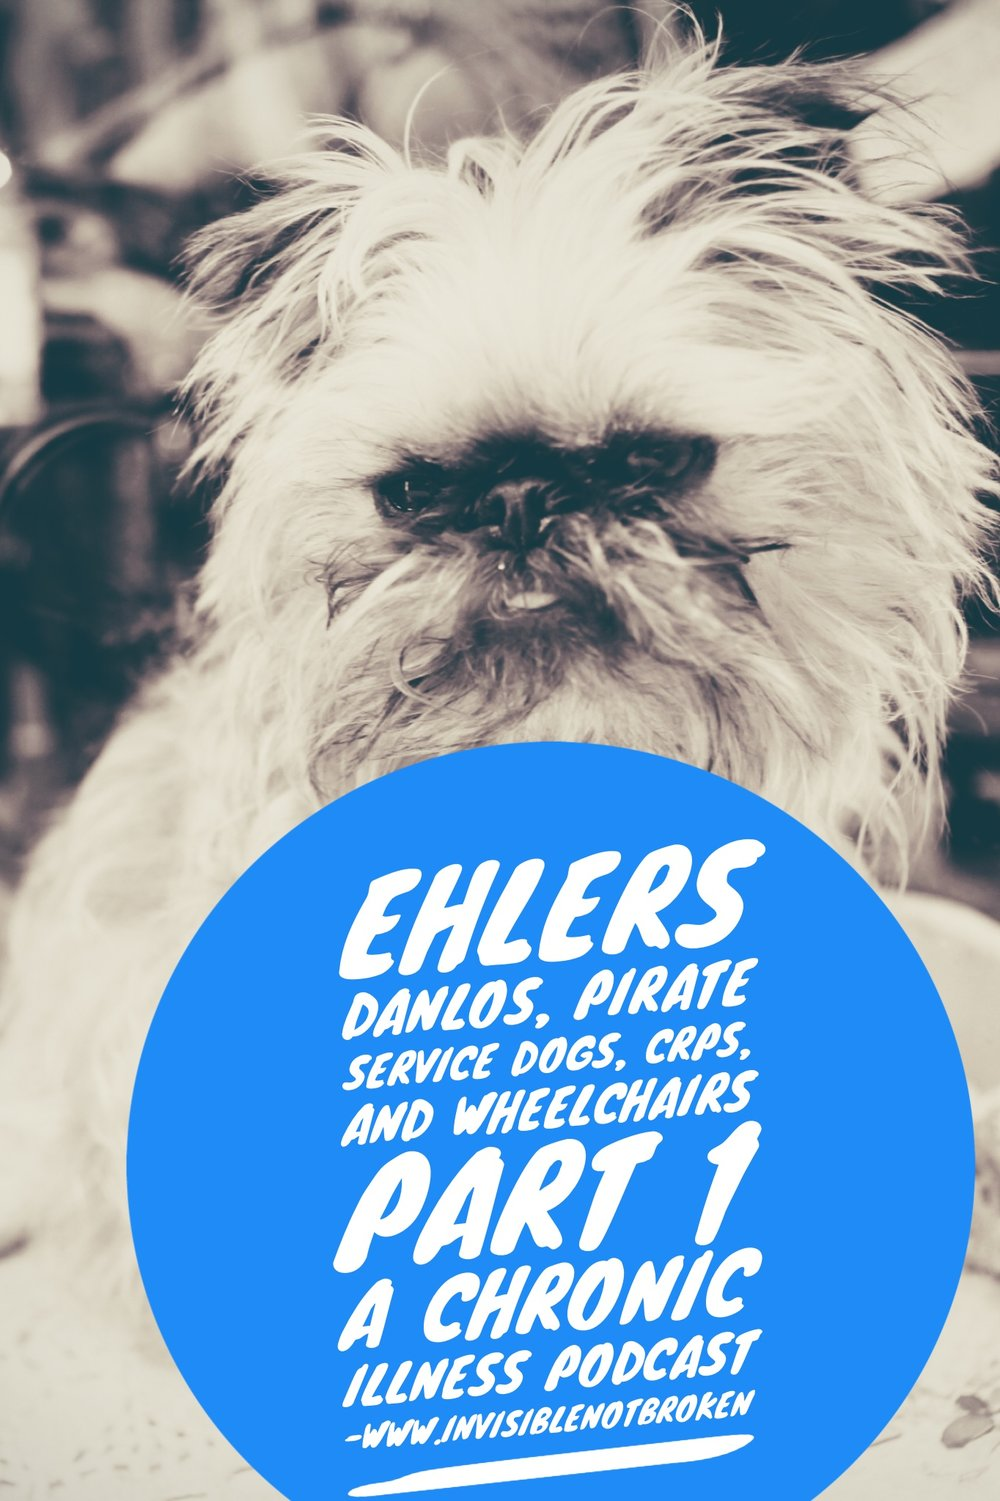 ehlers-danlos-crps-service-dog-wheelchair-chronic-illness-blog.jpg